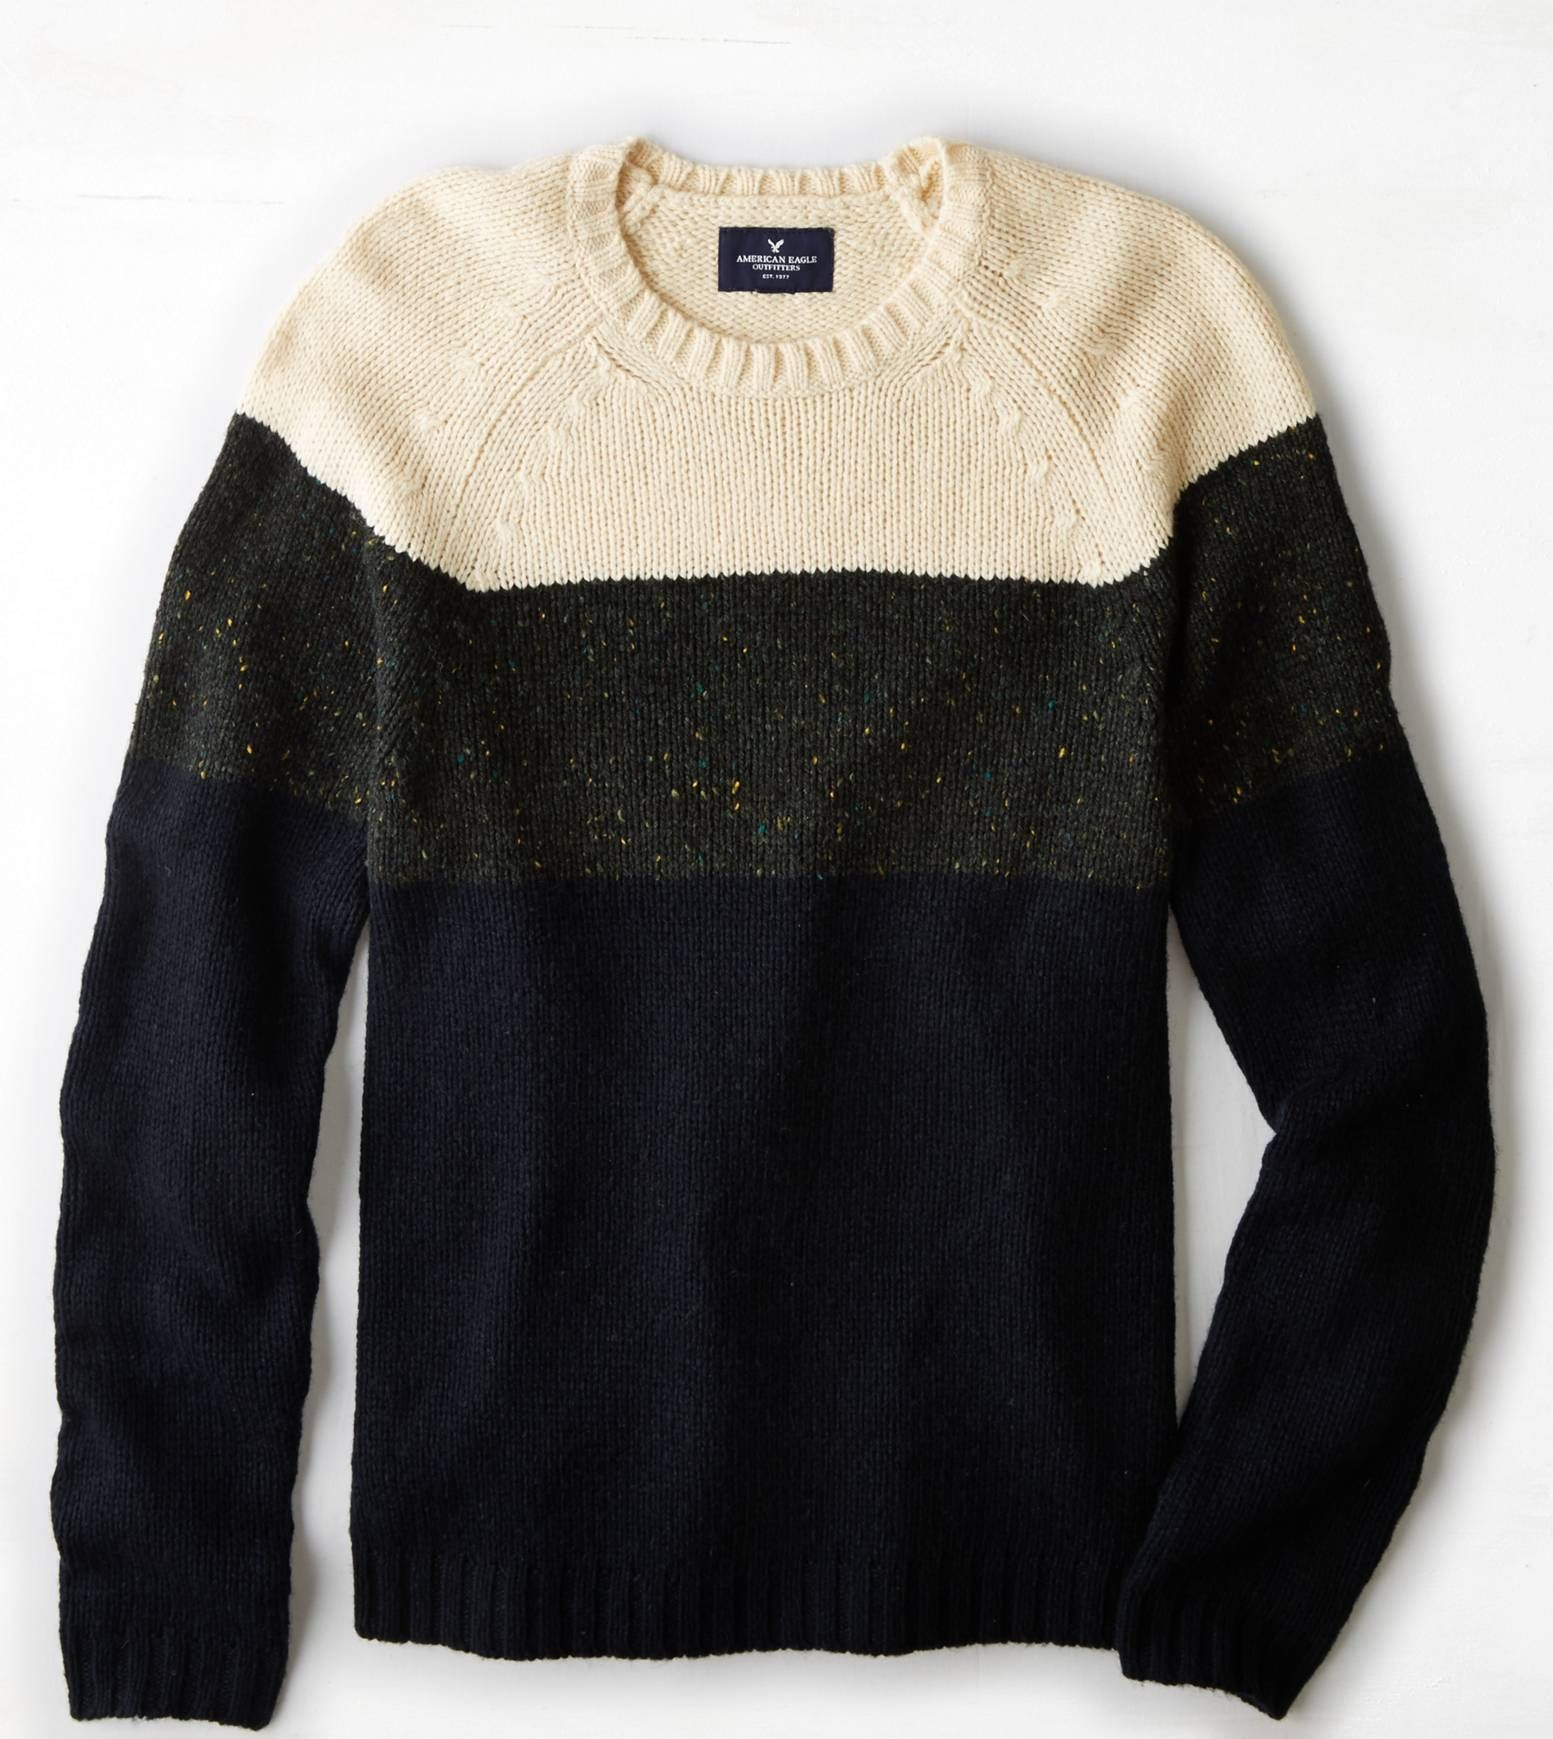 Color: Sheep Size: Small Really want!